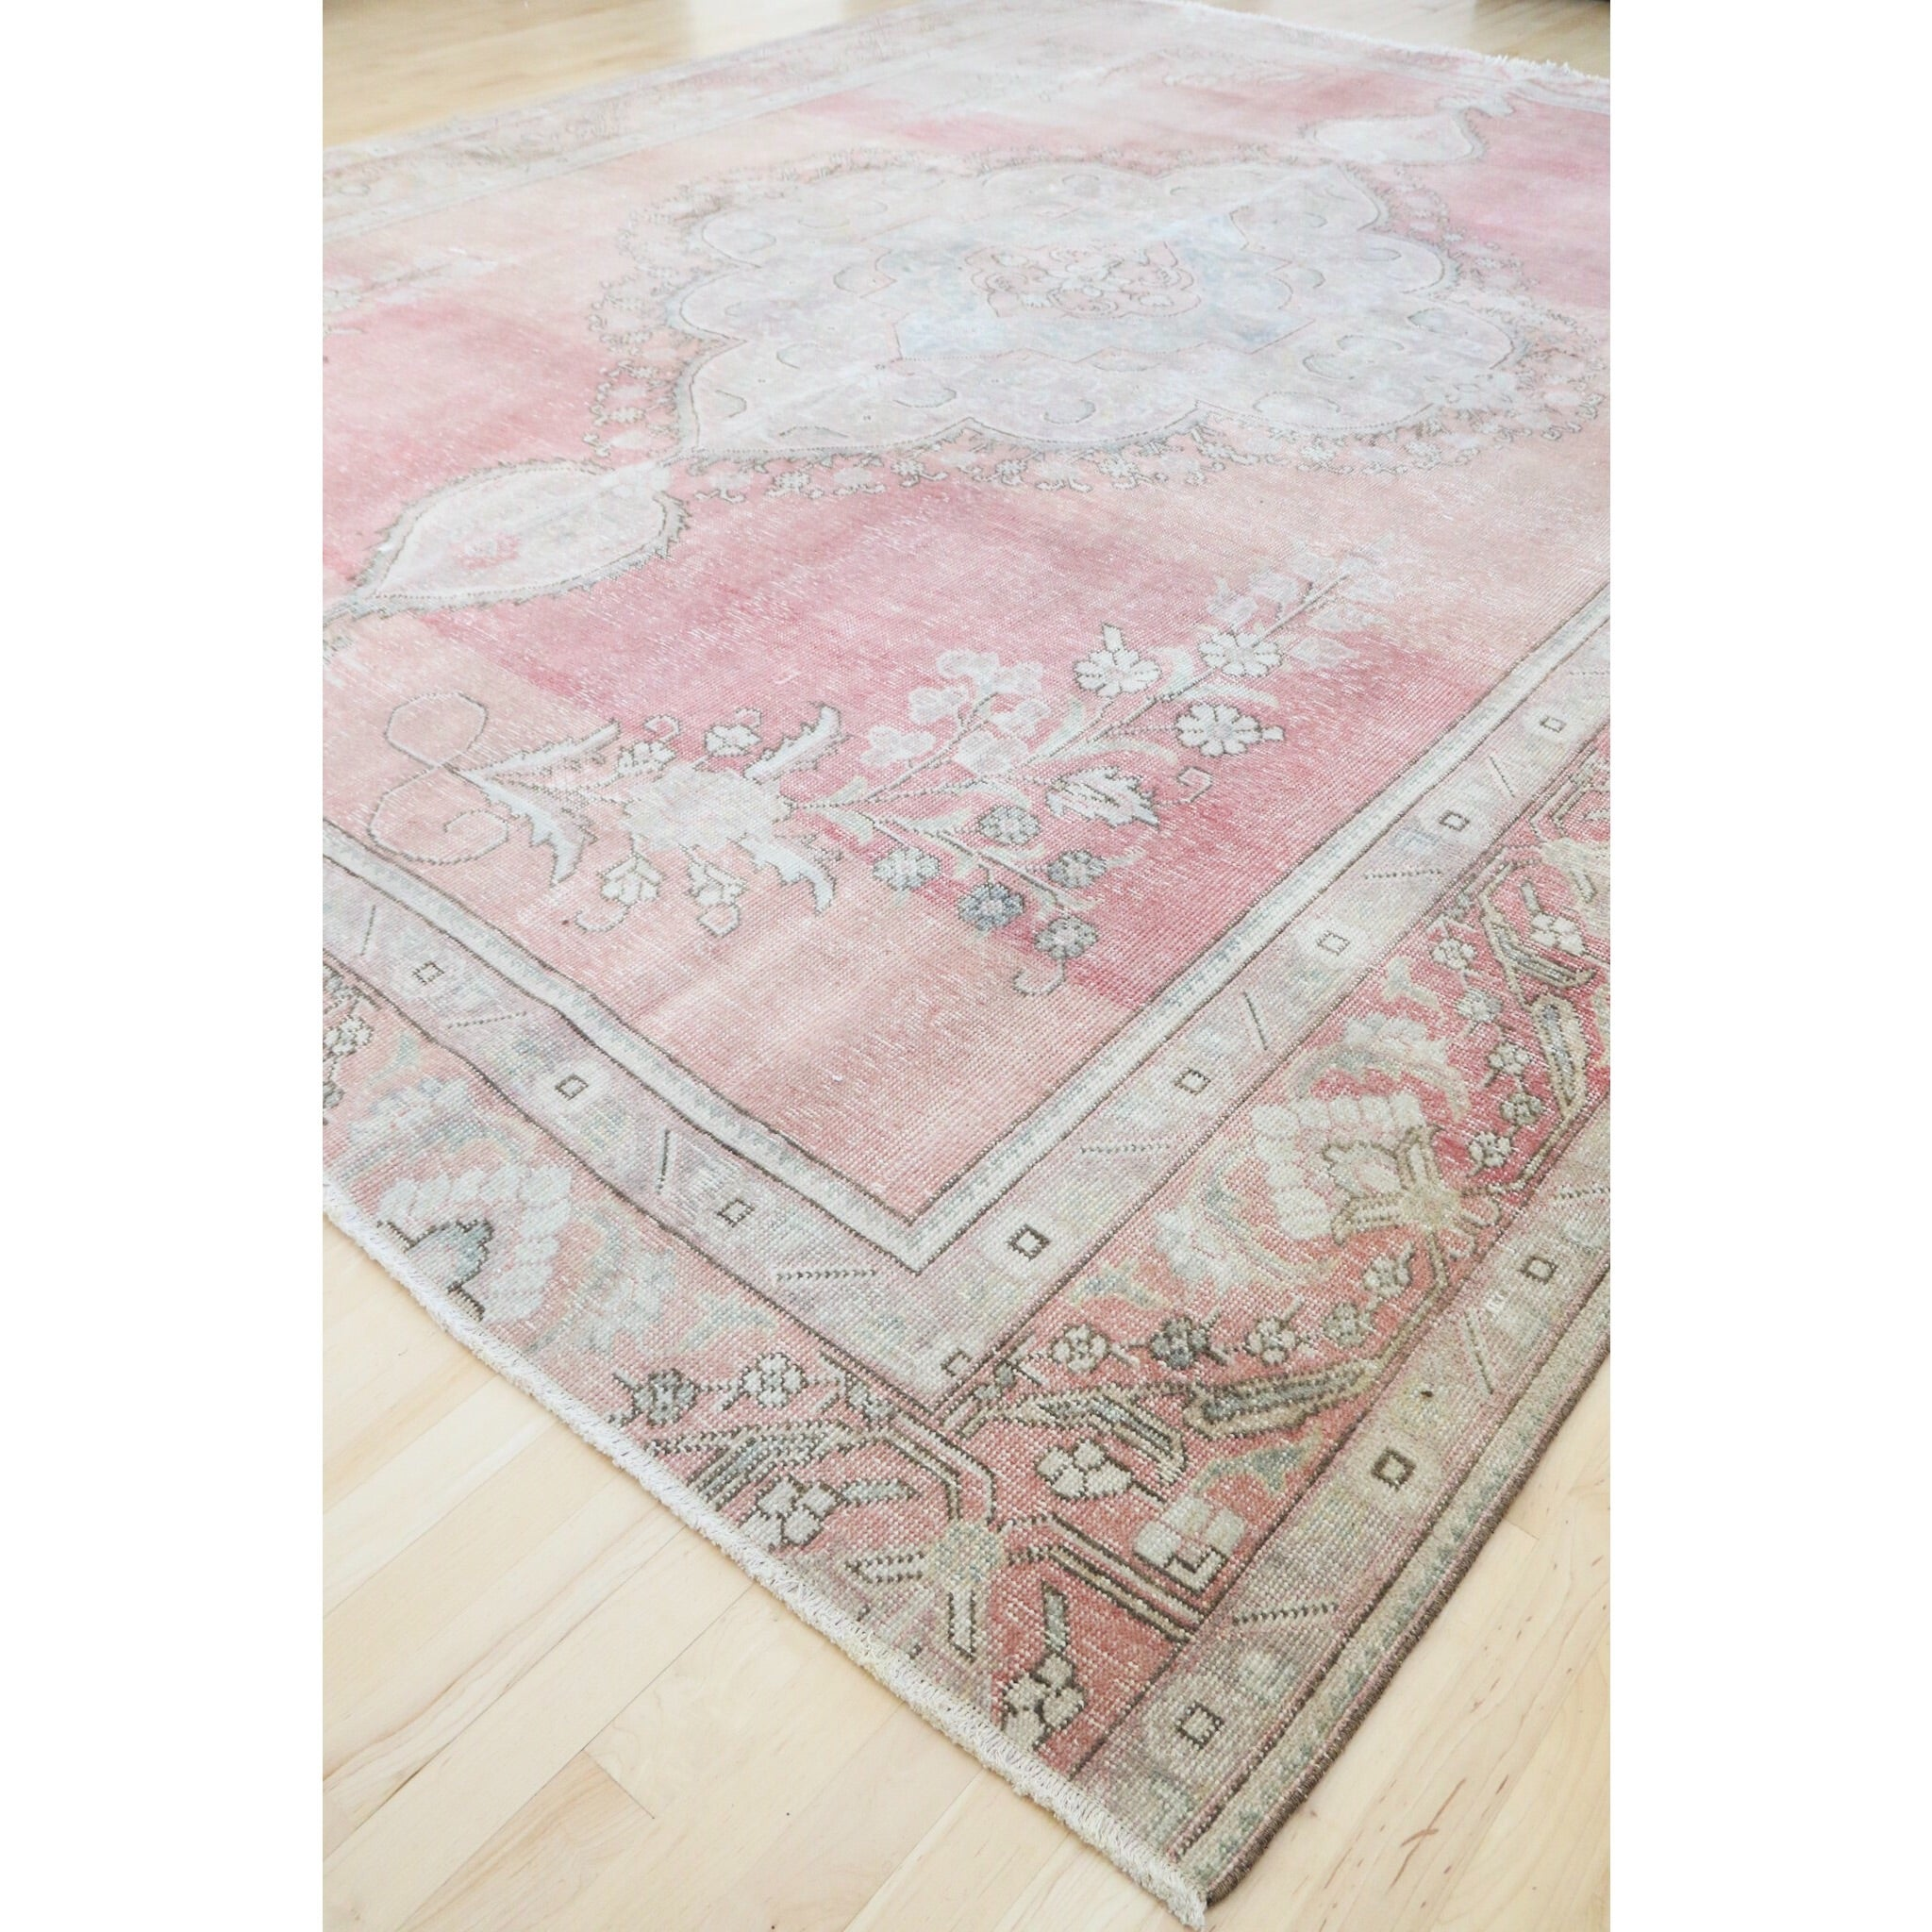 This handwoven vintage Turkish rug has beautiful shades of pinks and neutral, blue and yellow accents. The detail in the rug is stunning!